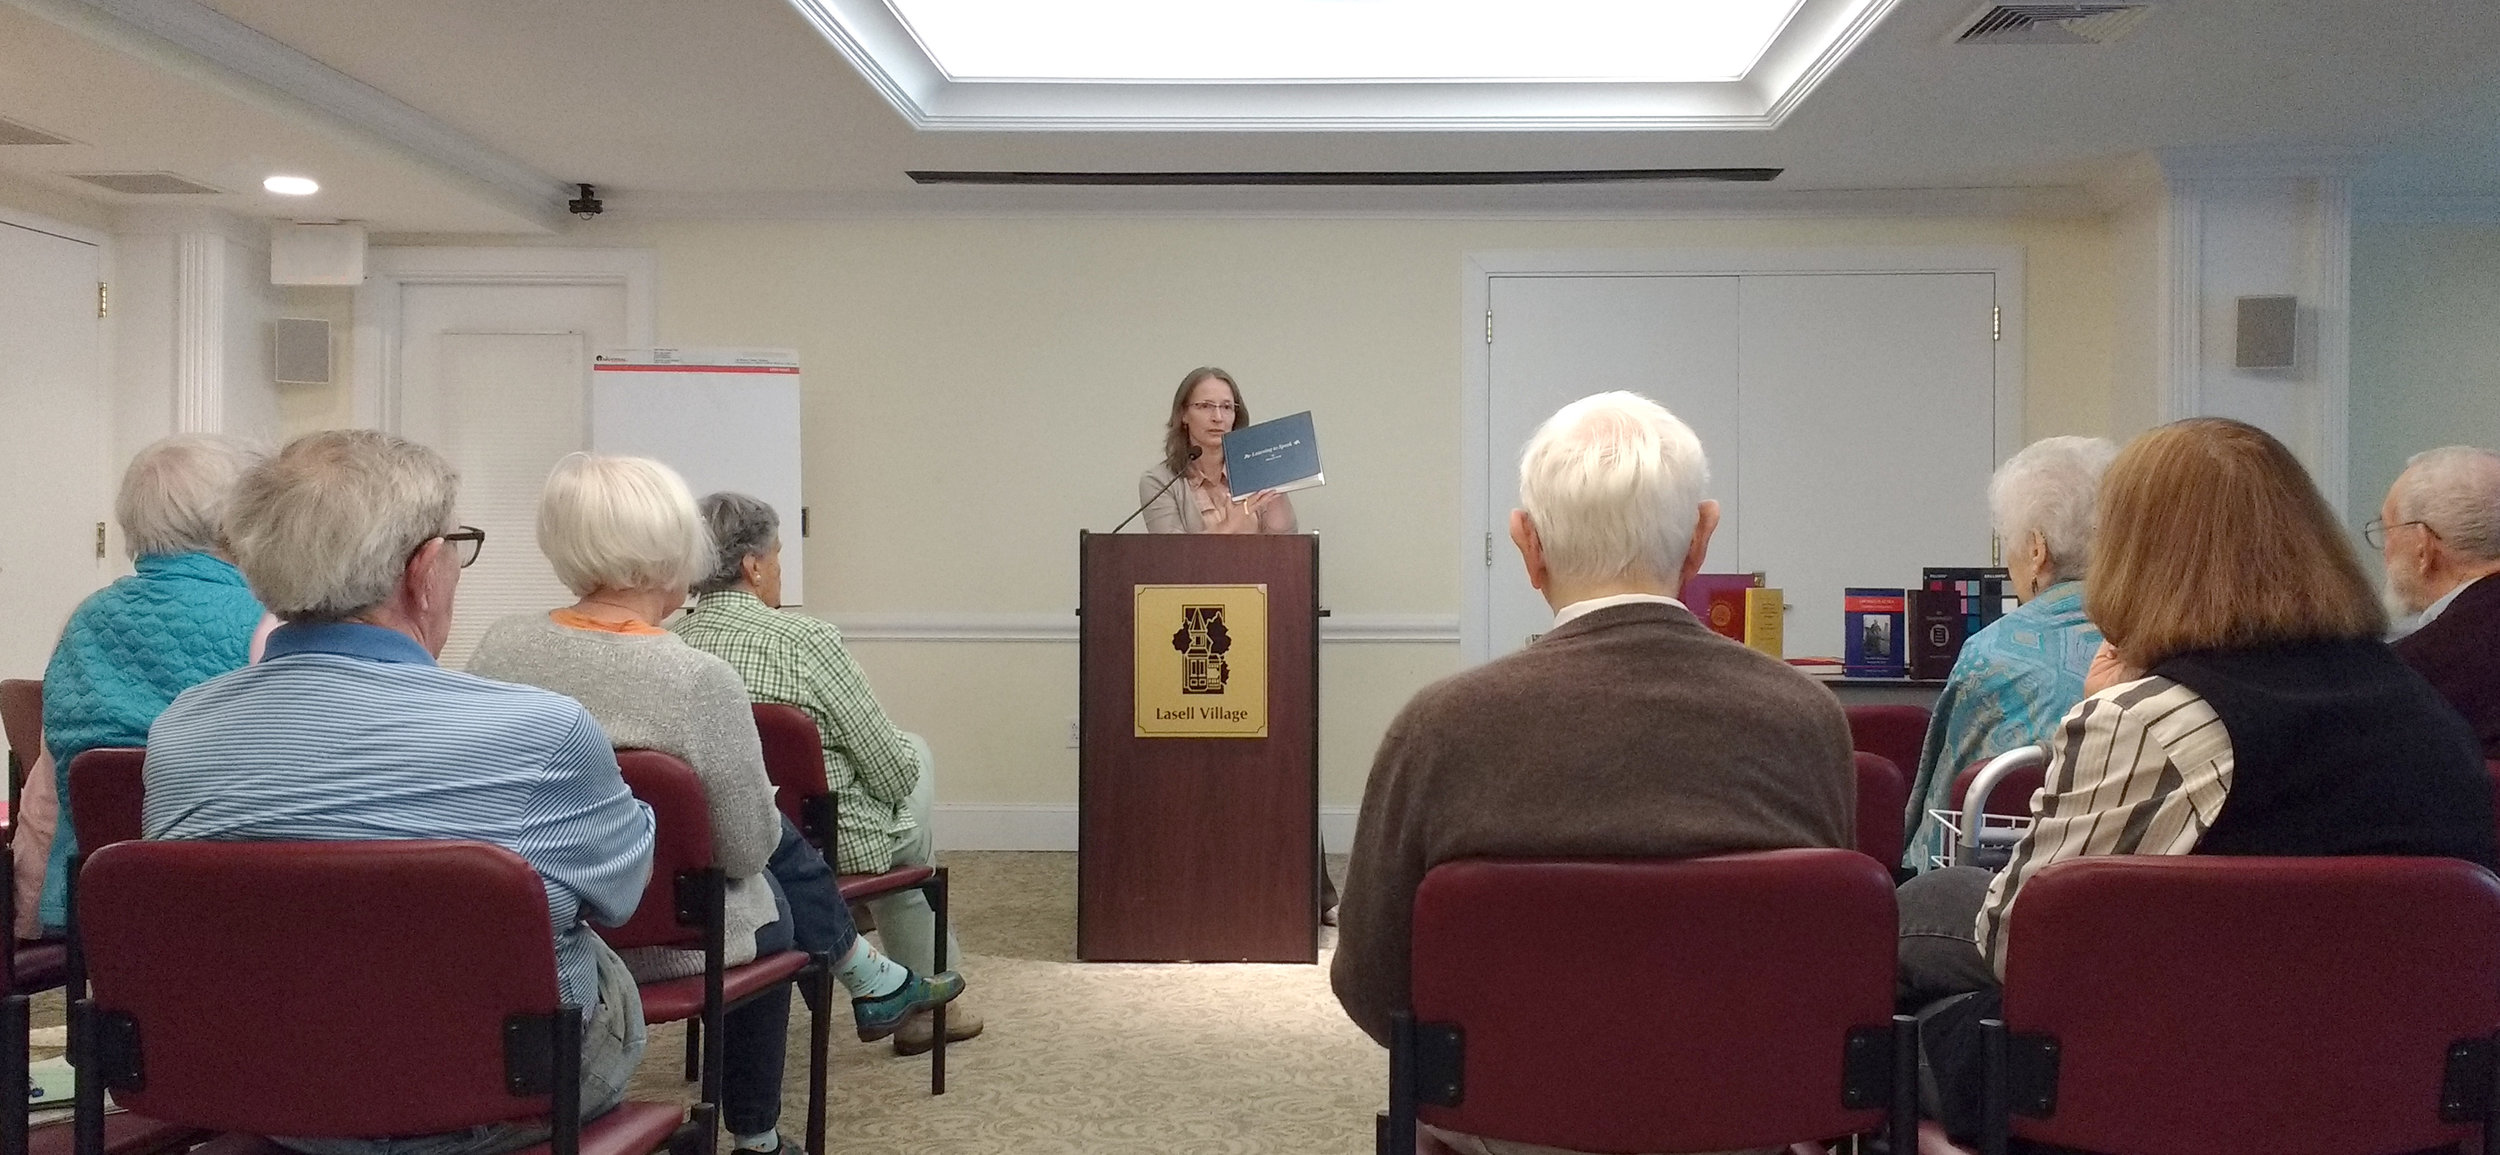 Ali delivers a presentation on the process and importance of memoir writing at Lasell Village, Newton, MA (2016)